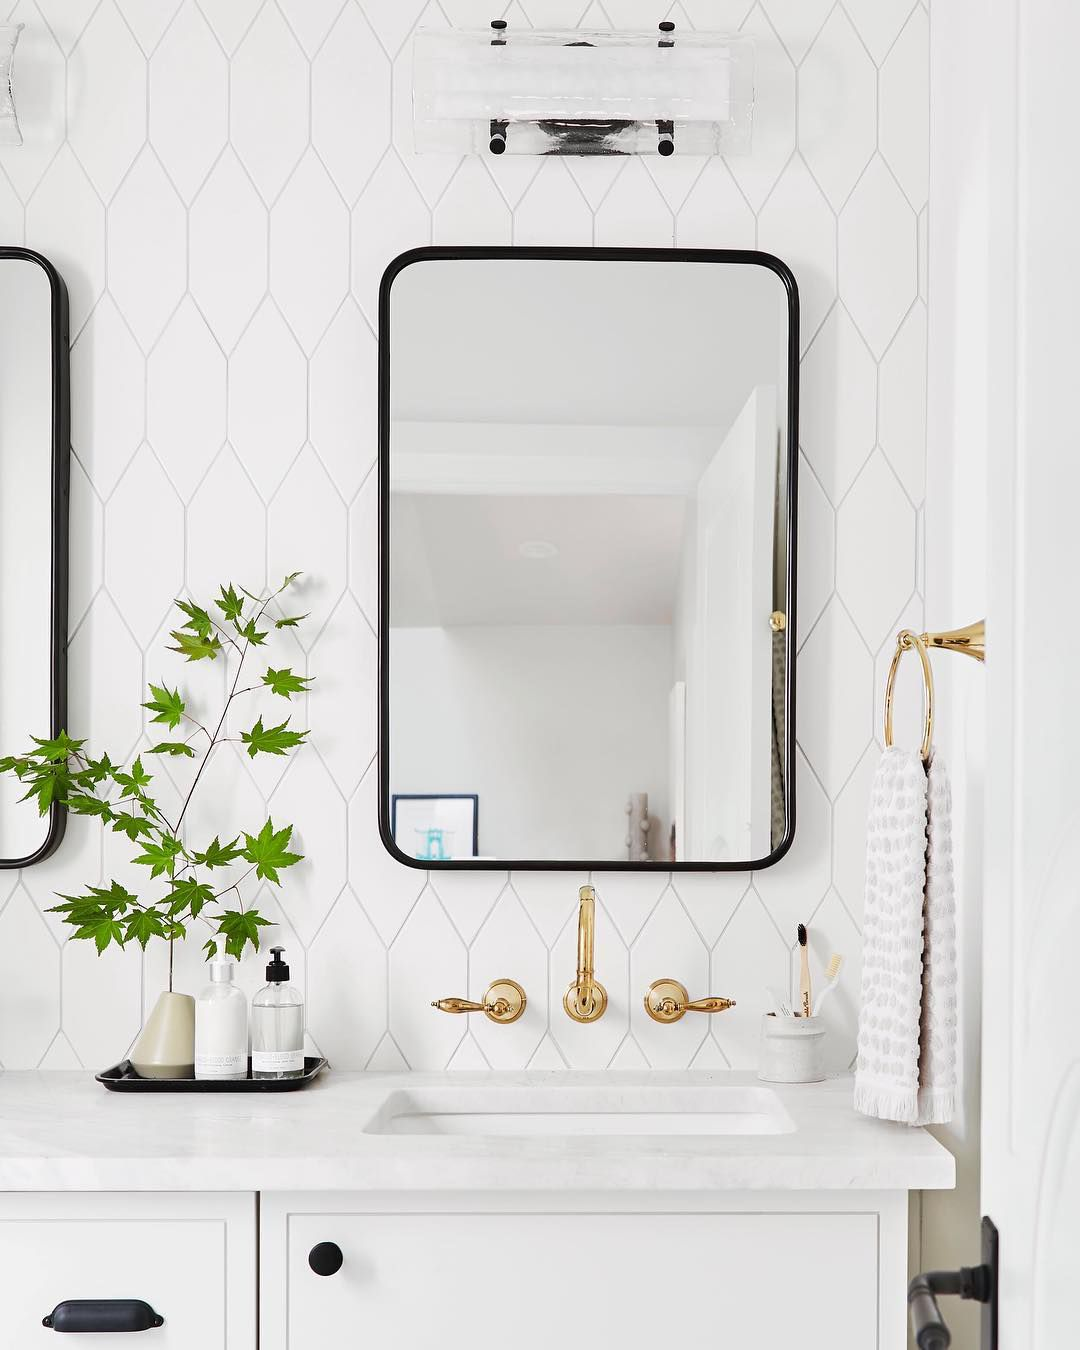 Bedroom Flooring Trends 2019: These 8 Bathroom Tile Trends Are Defining 2019—And There's